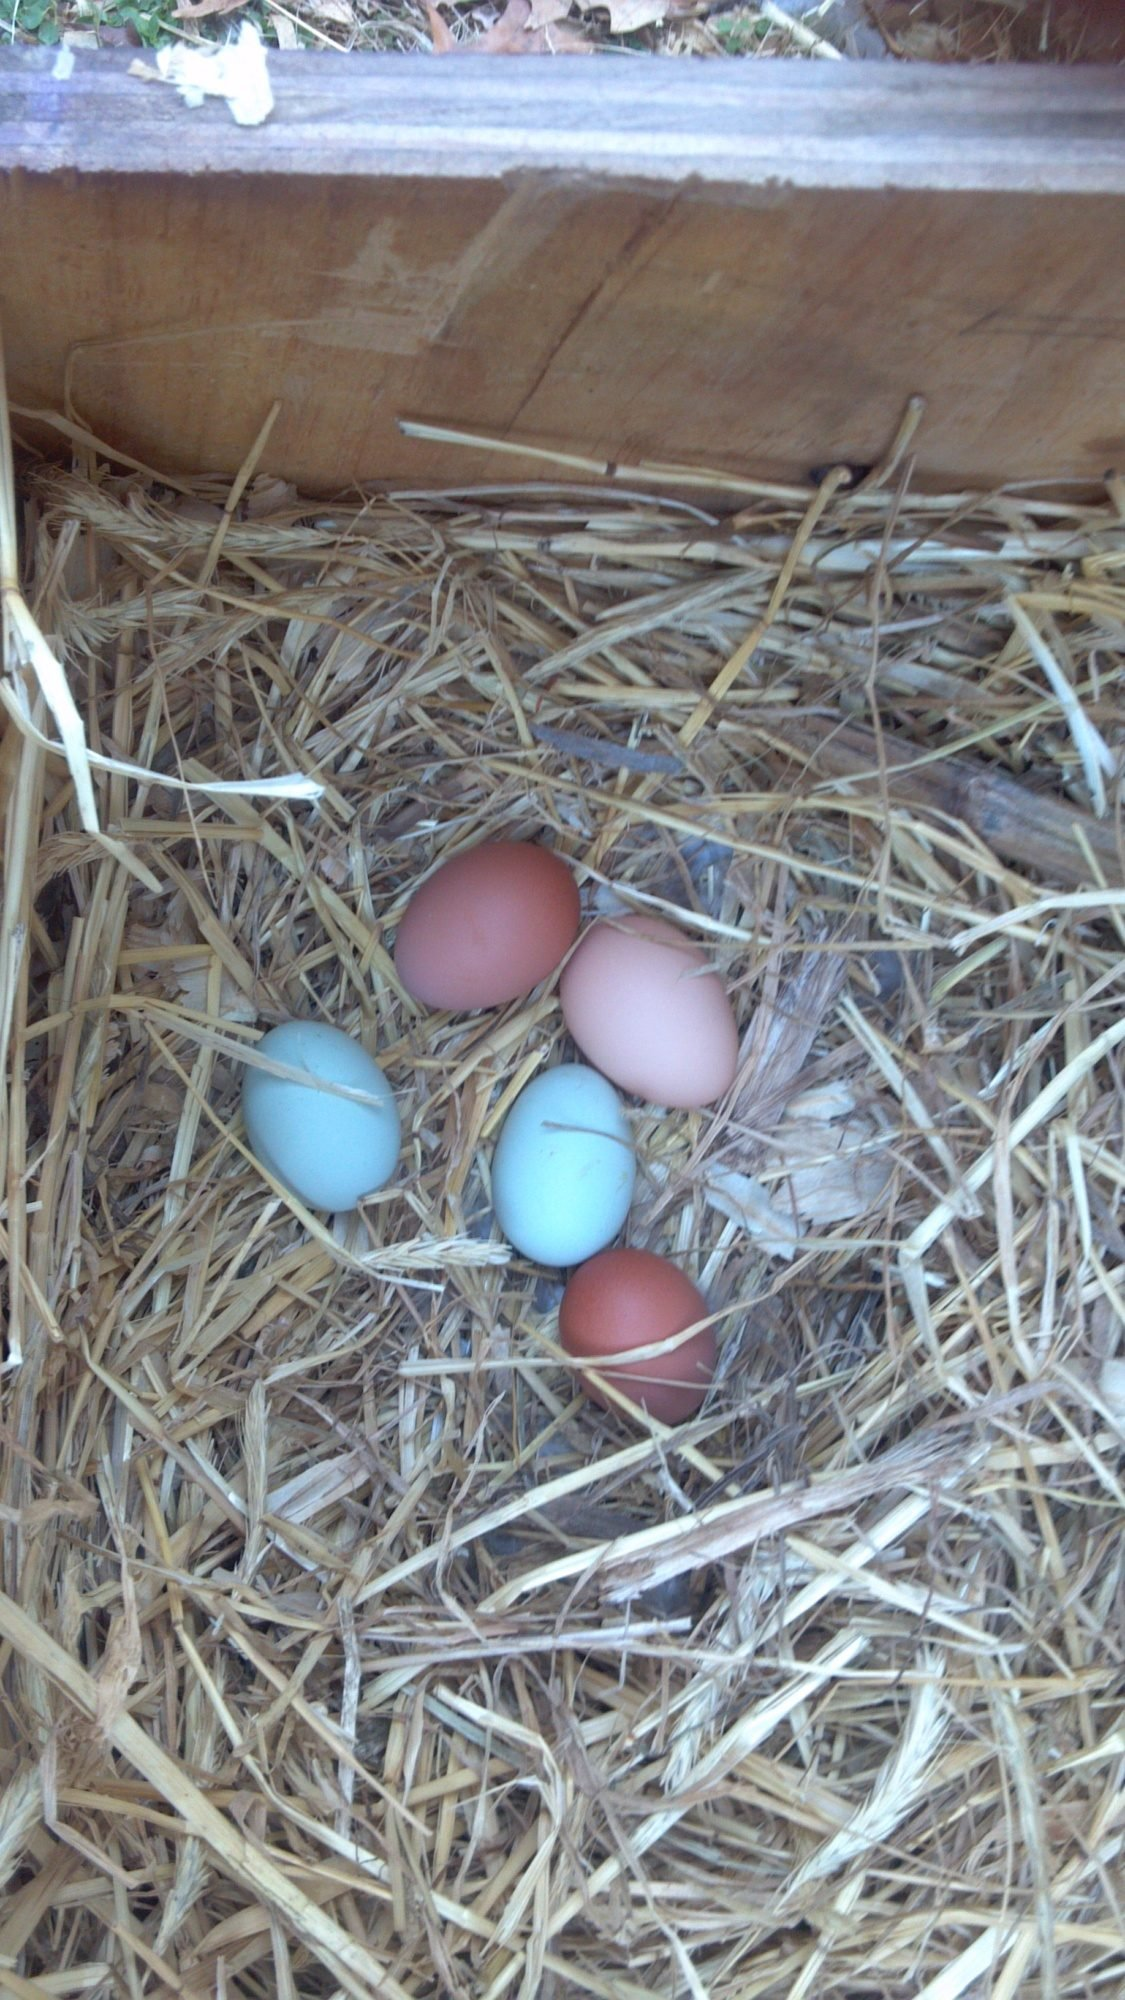 SOMD Chicken Mafia's photos in how many Eggs you get today